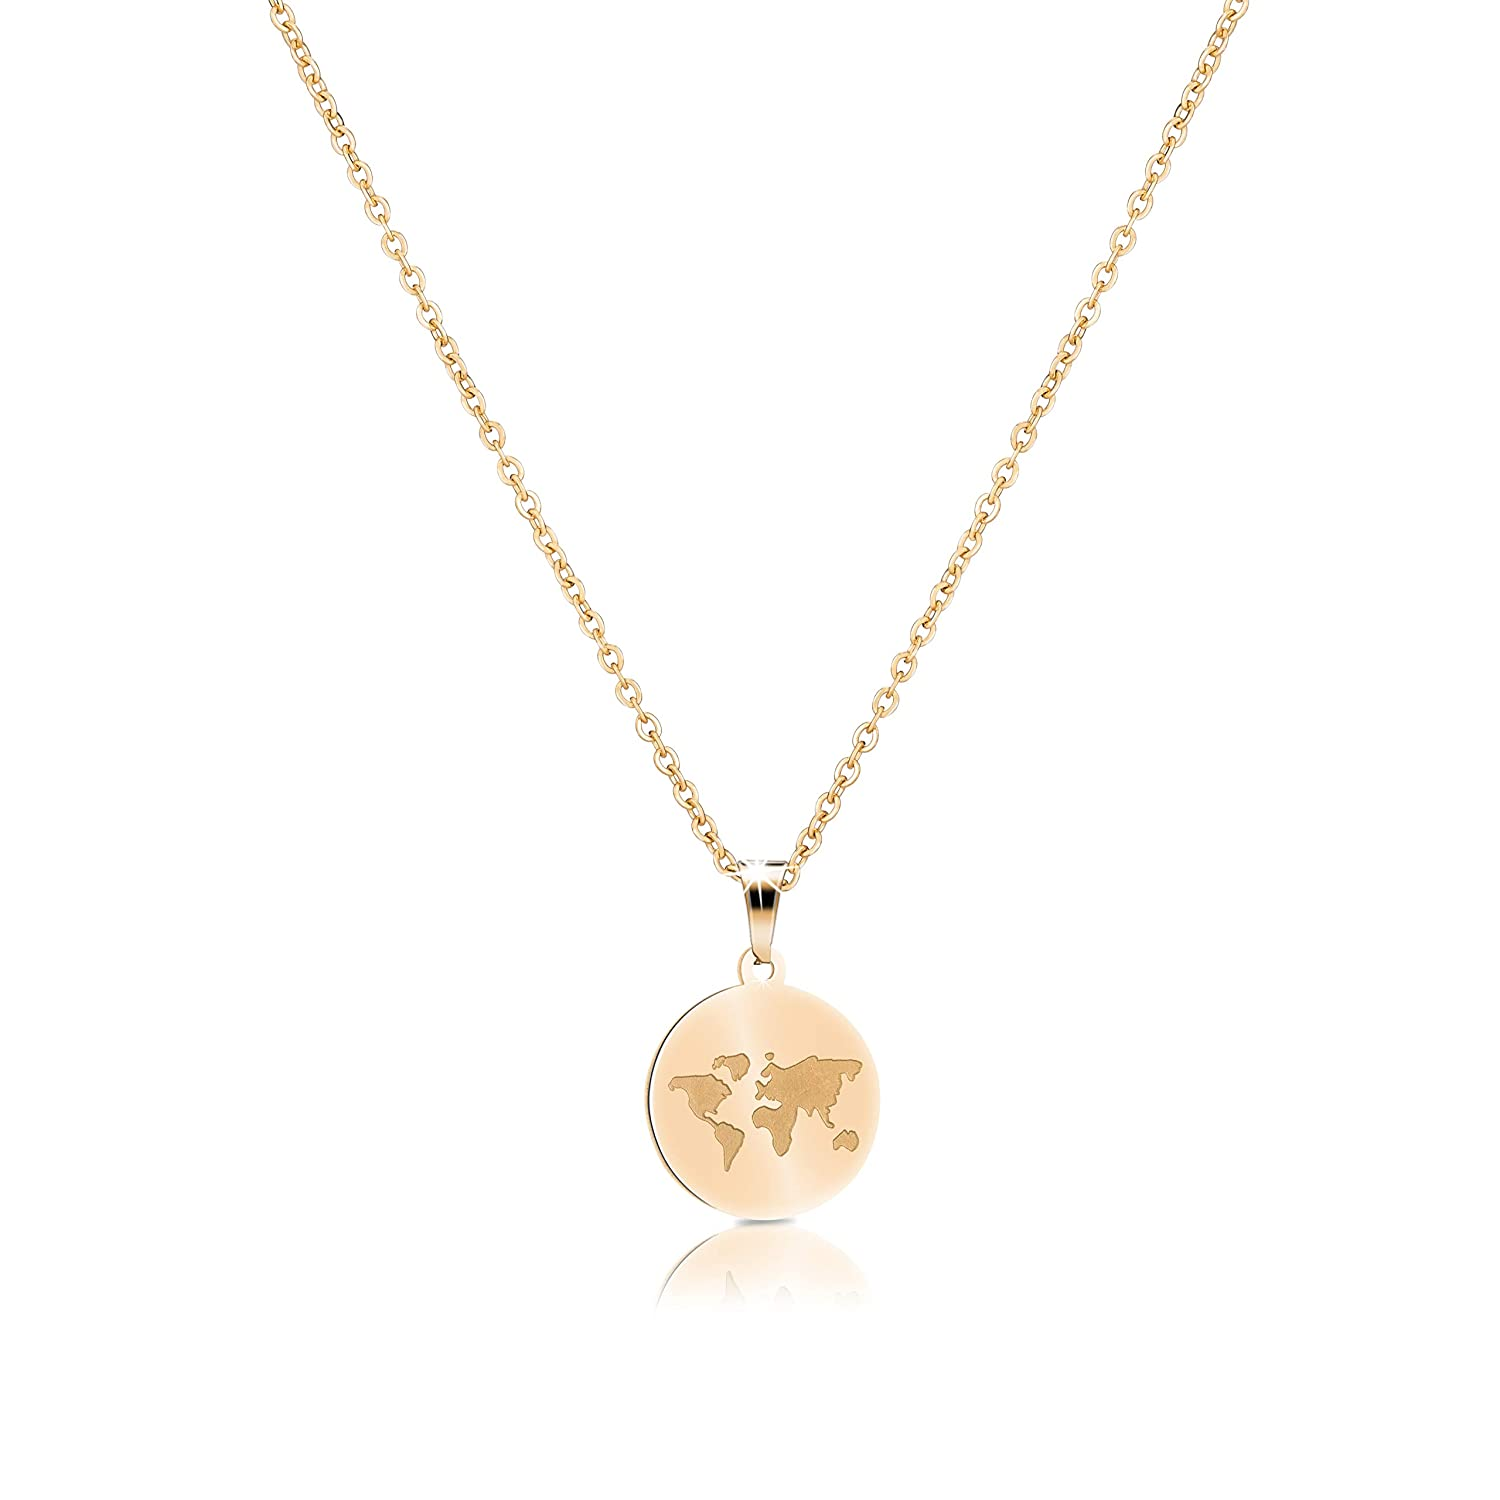 52c429d751b1e GOOD.designs ® Ladies World Necklace in Silver, Gold or Rose Gold, World  Map Coin Necklace, Chain length 18 in (45 cm)